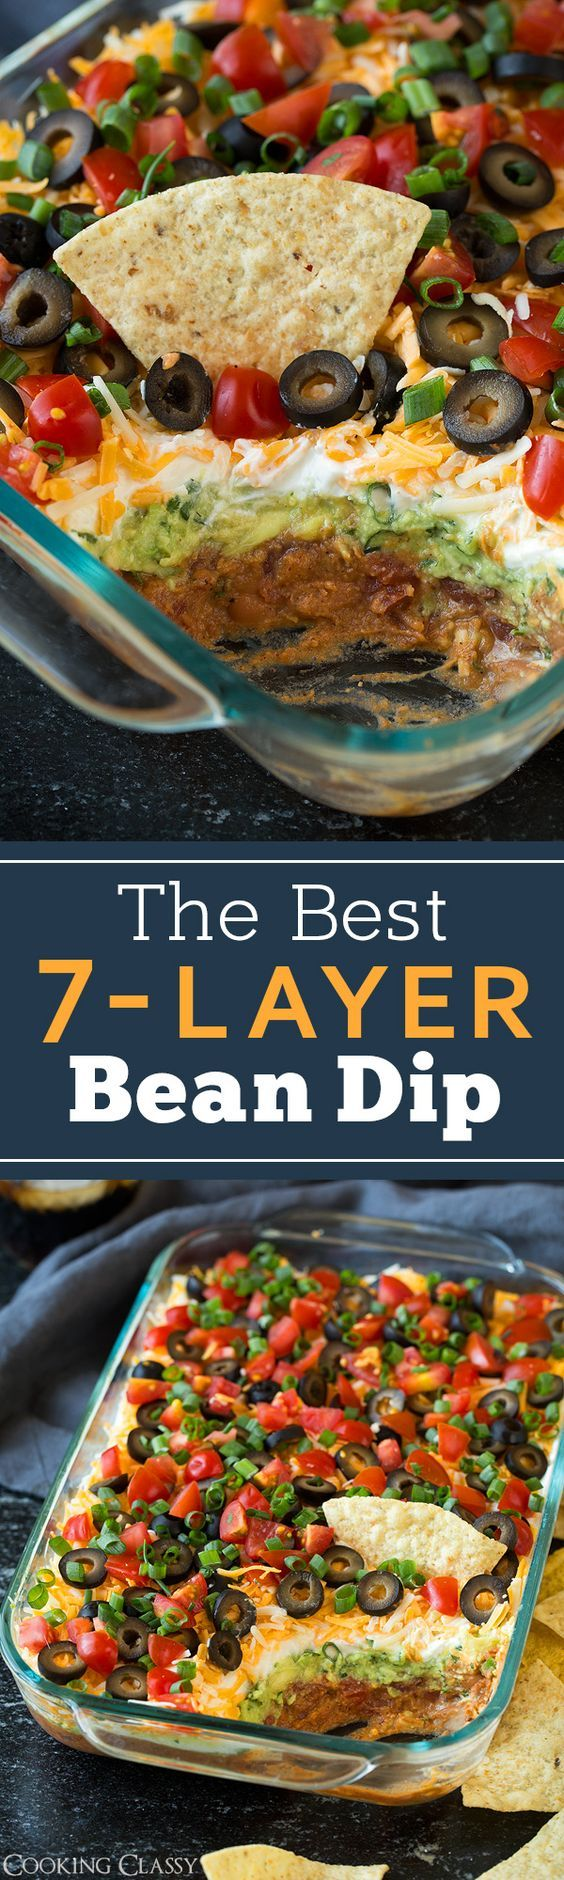 7 Layer Bean Dip  | #Appetizers #CleanEating Sherman Financial Group